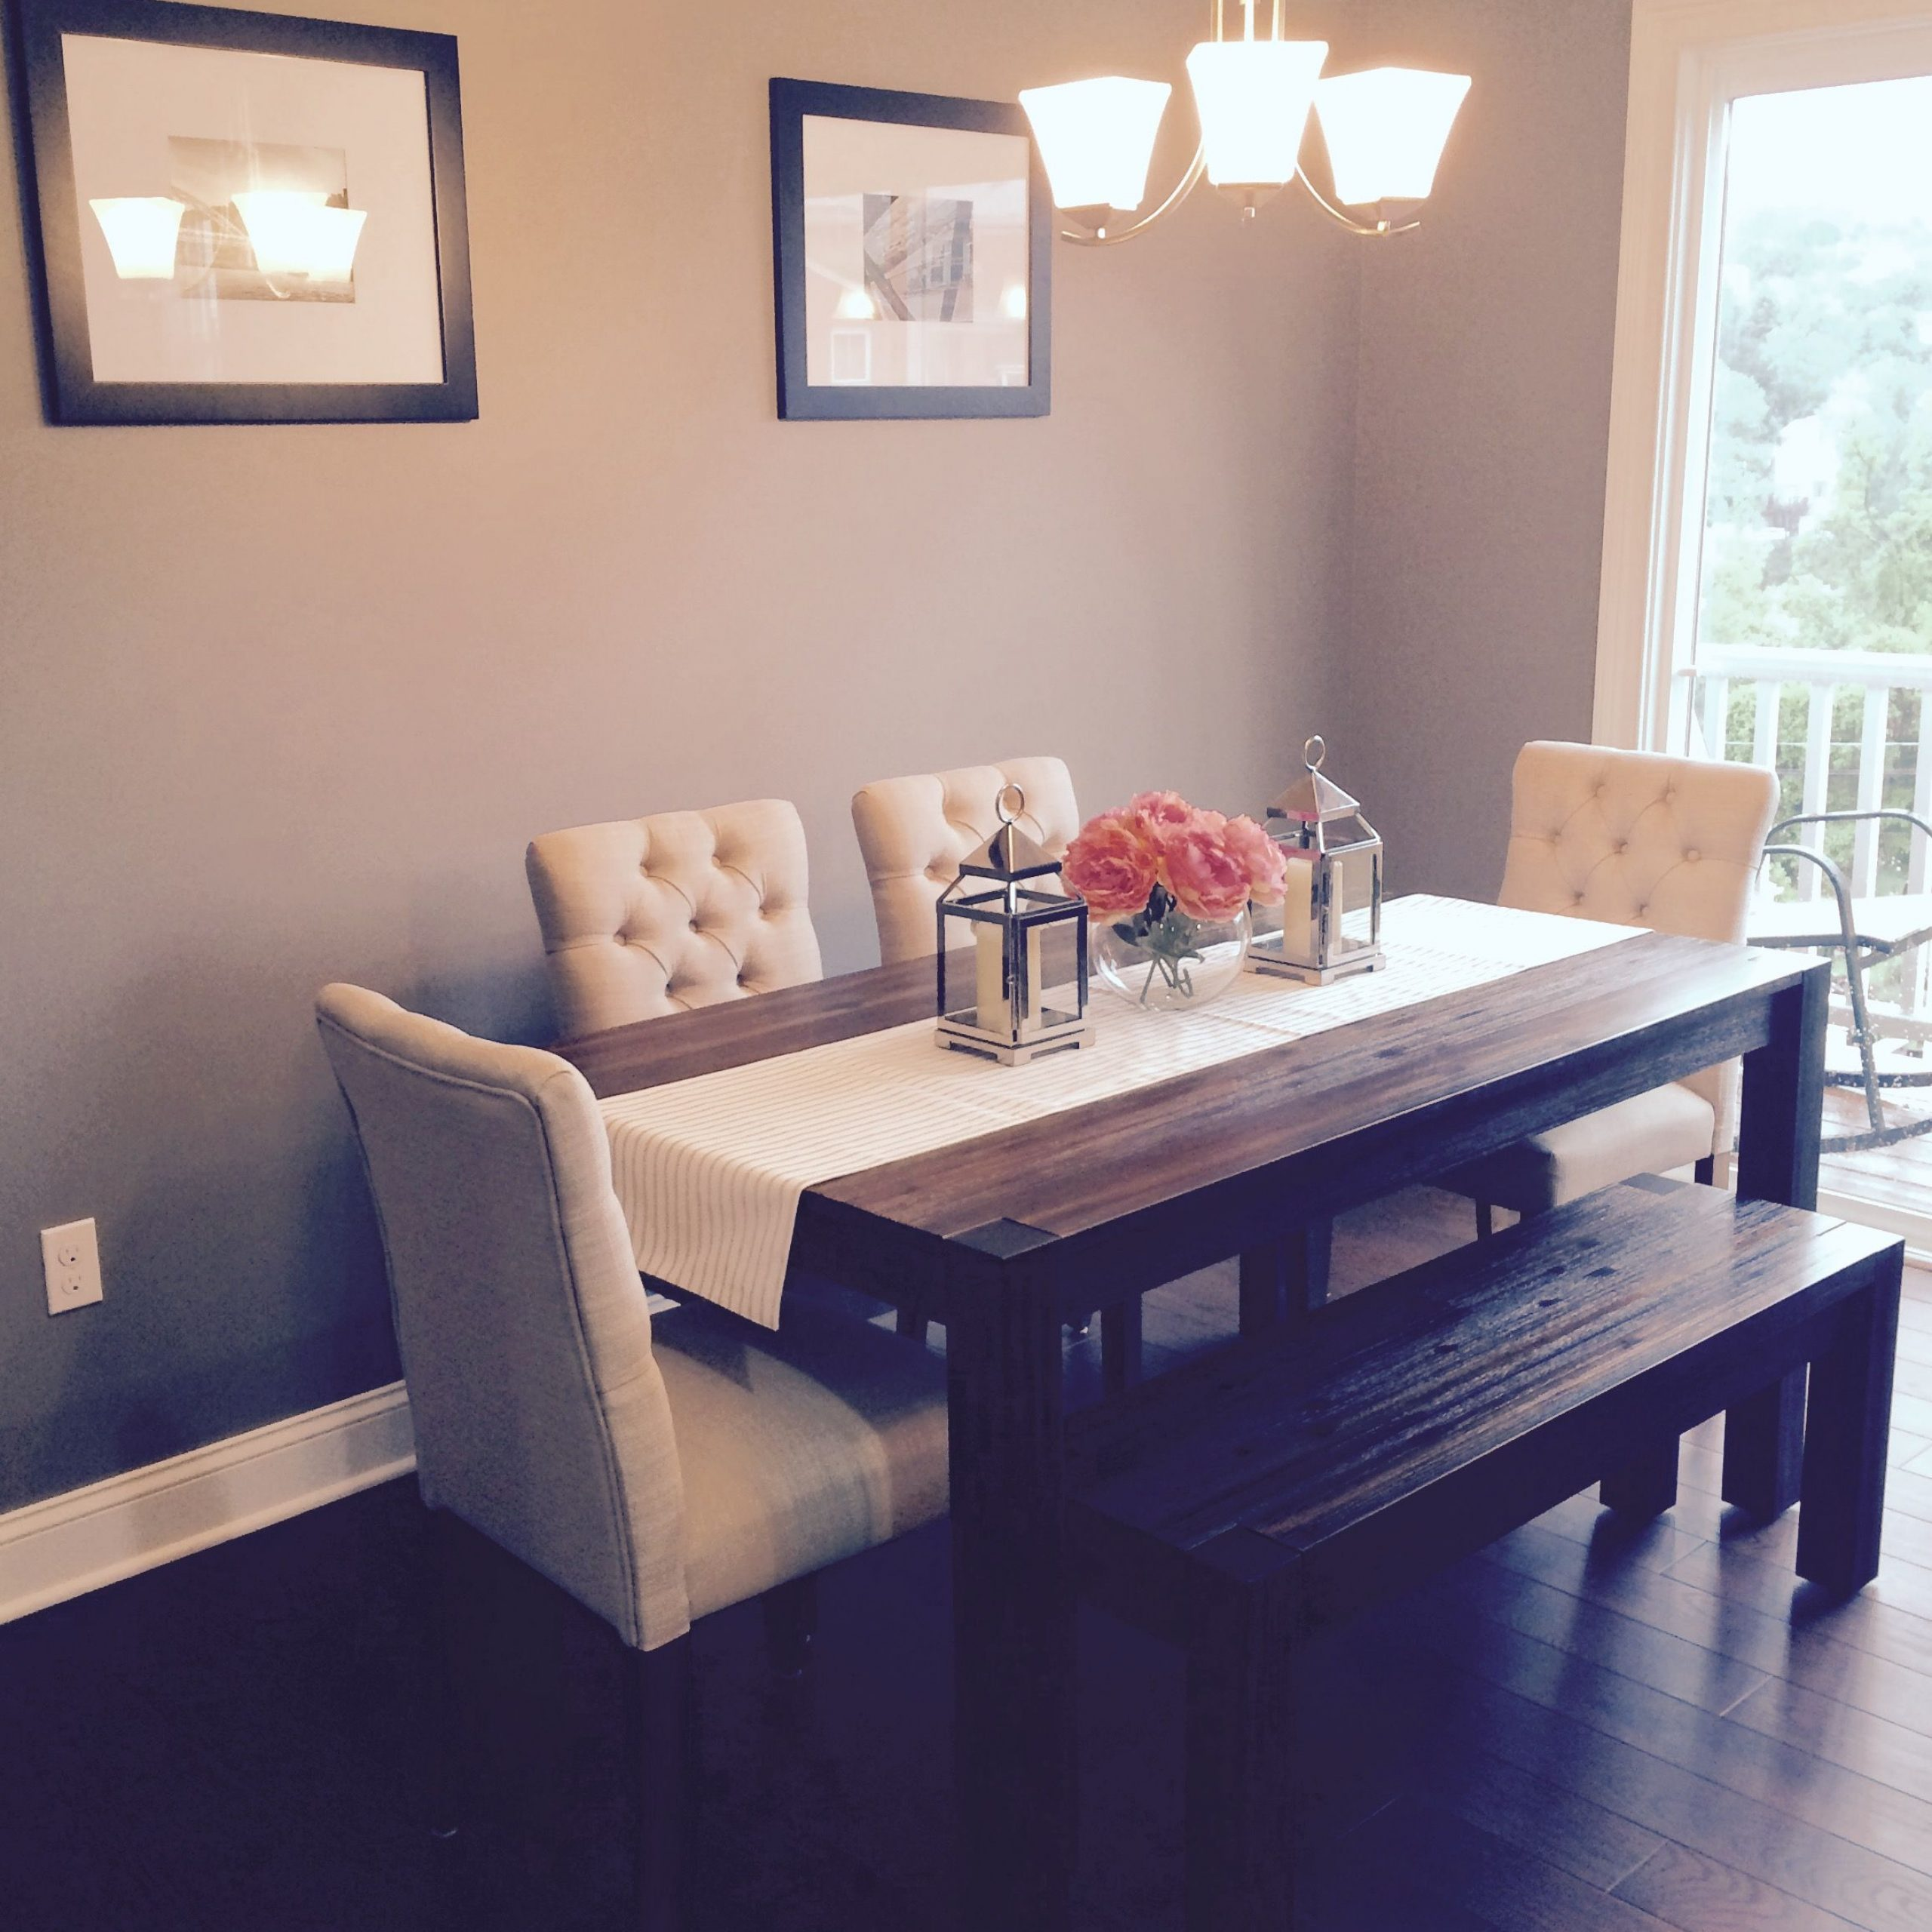 Dining Room: Avondale (Macy's) Table & Bench With Fabric For 2017 Avondale Dining Tables (View 12 of 25)